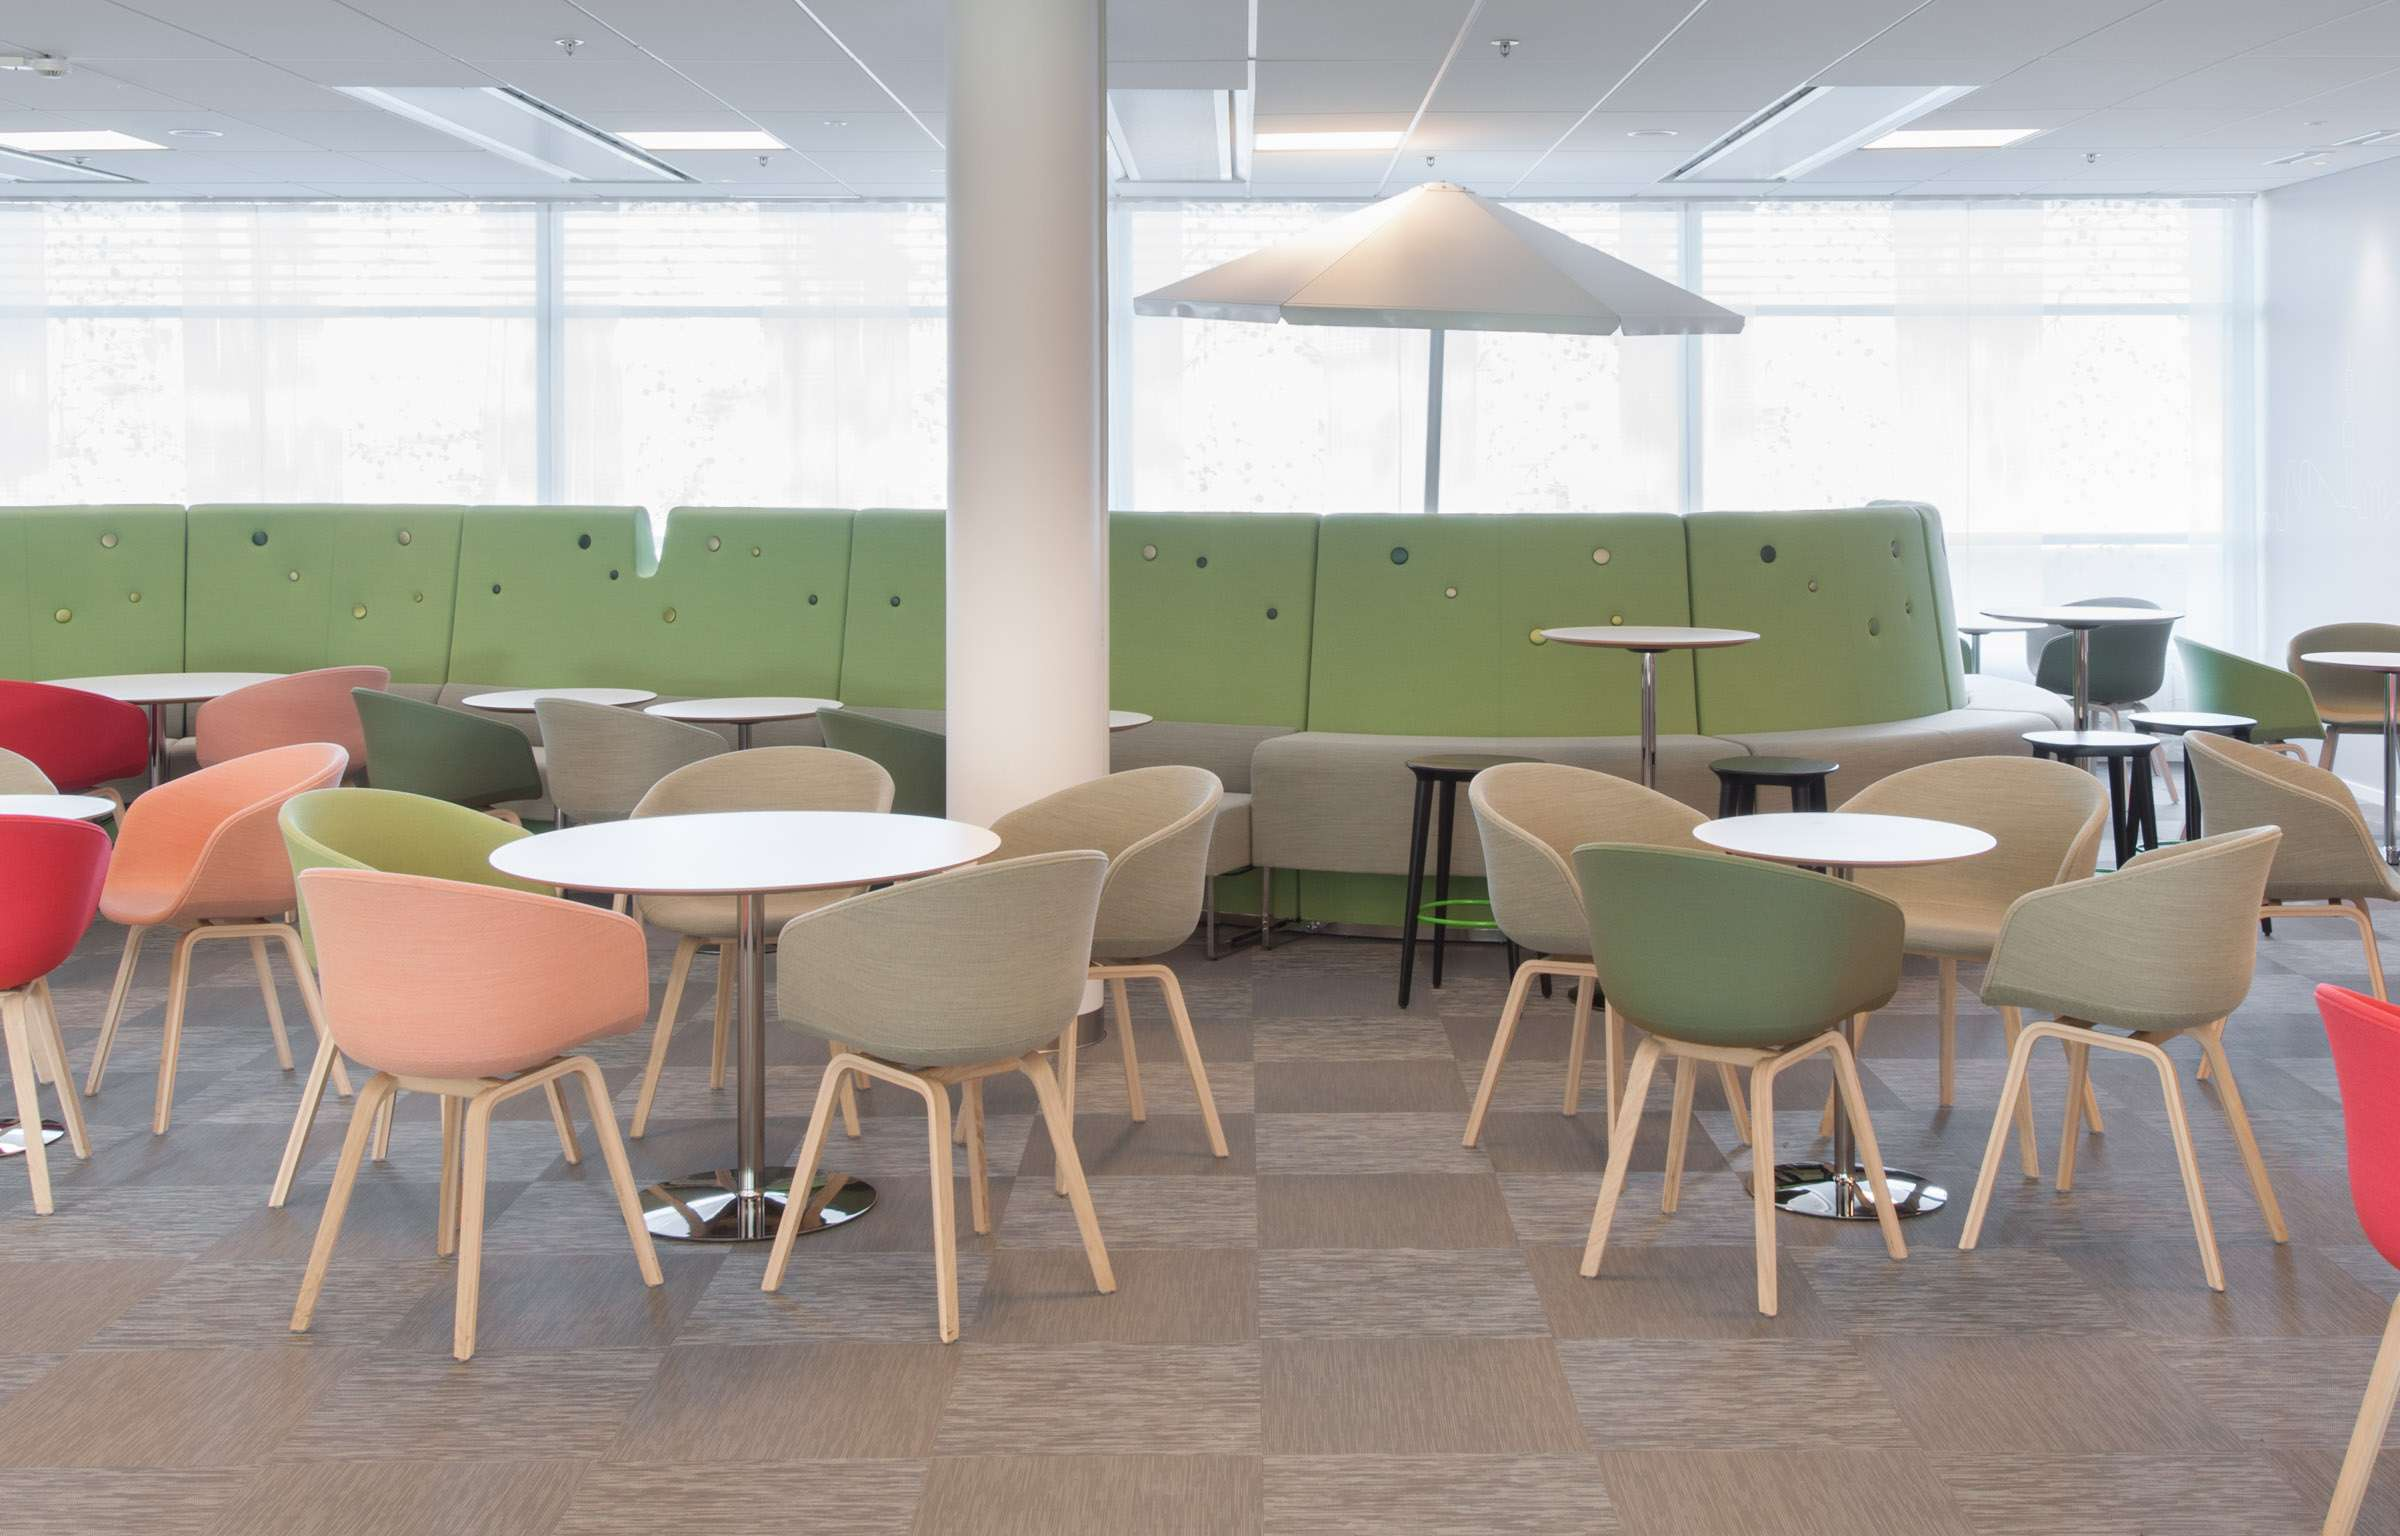 Checkered floor in brown using Bolon Studio™ tiles in the office of Microsoft in Stockholm, Sweden